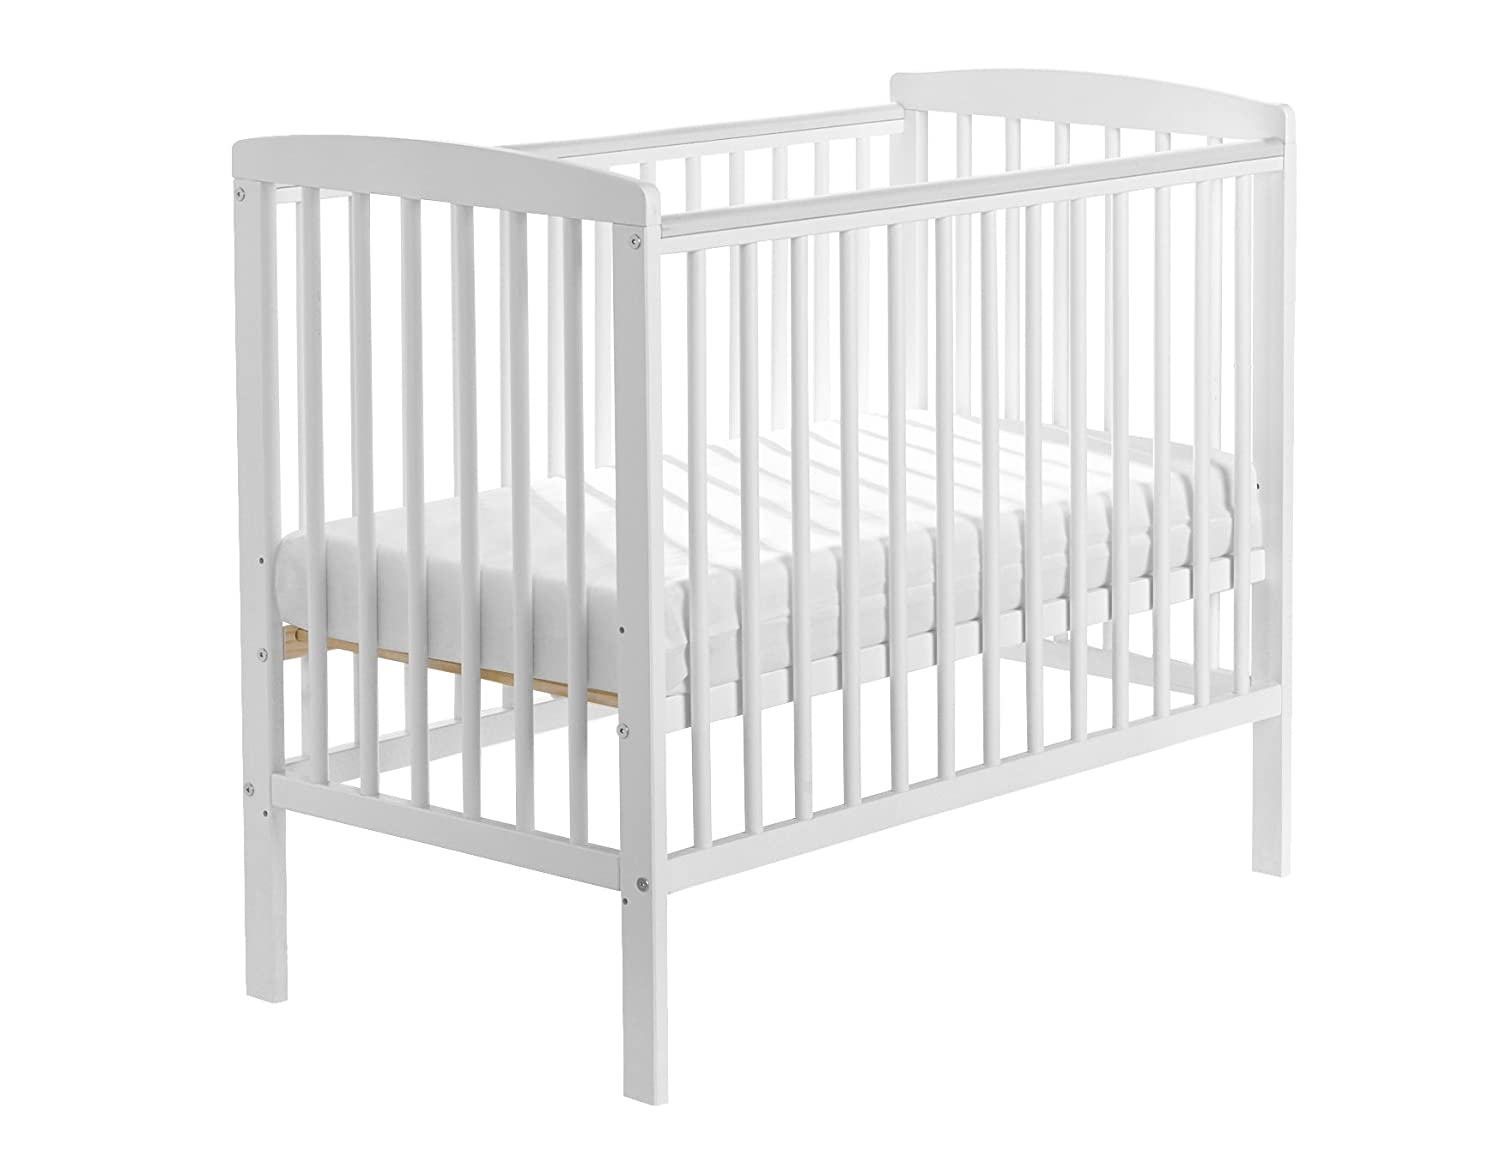 Kinder Valley Sydney Compact Cot (White) SYDCOMWHT